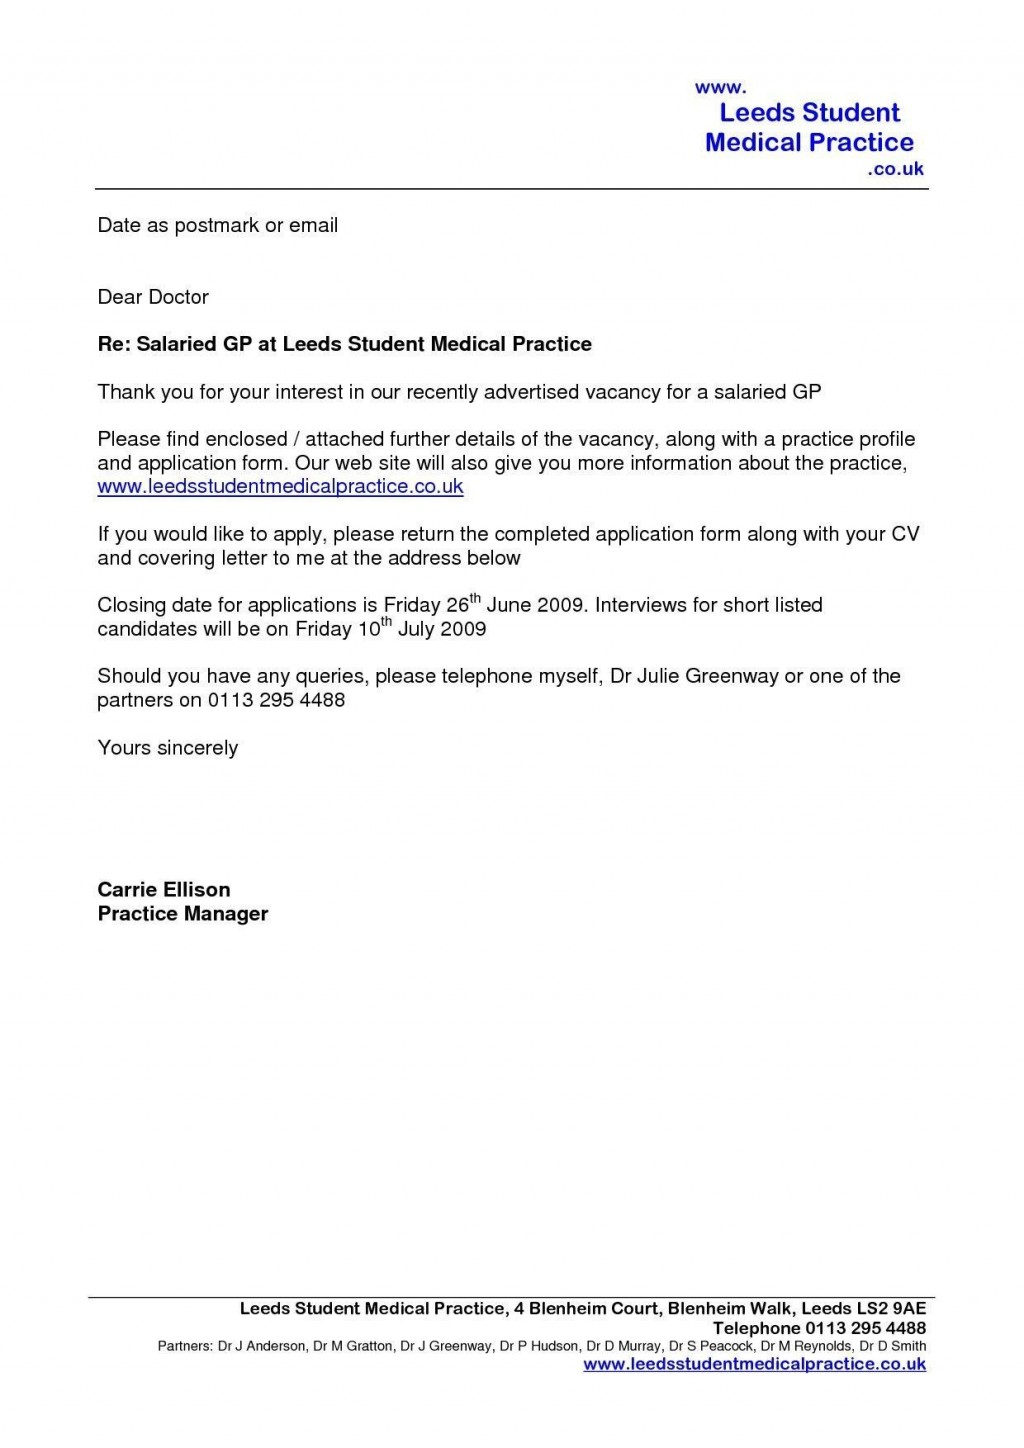 004 Singular Email Cover Letter Example Uk Concept Large